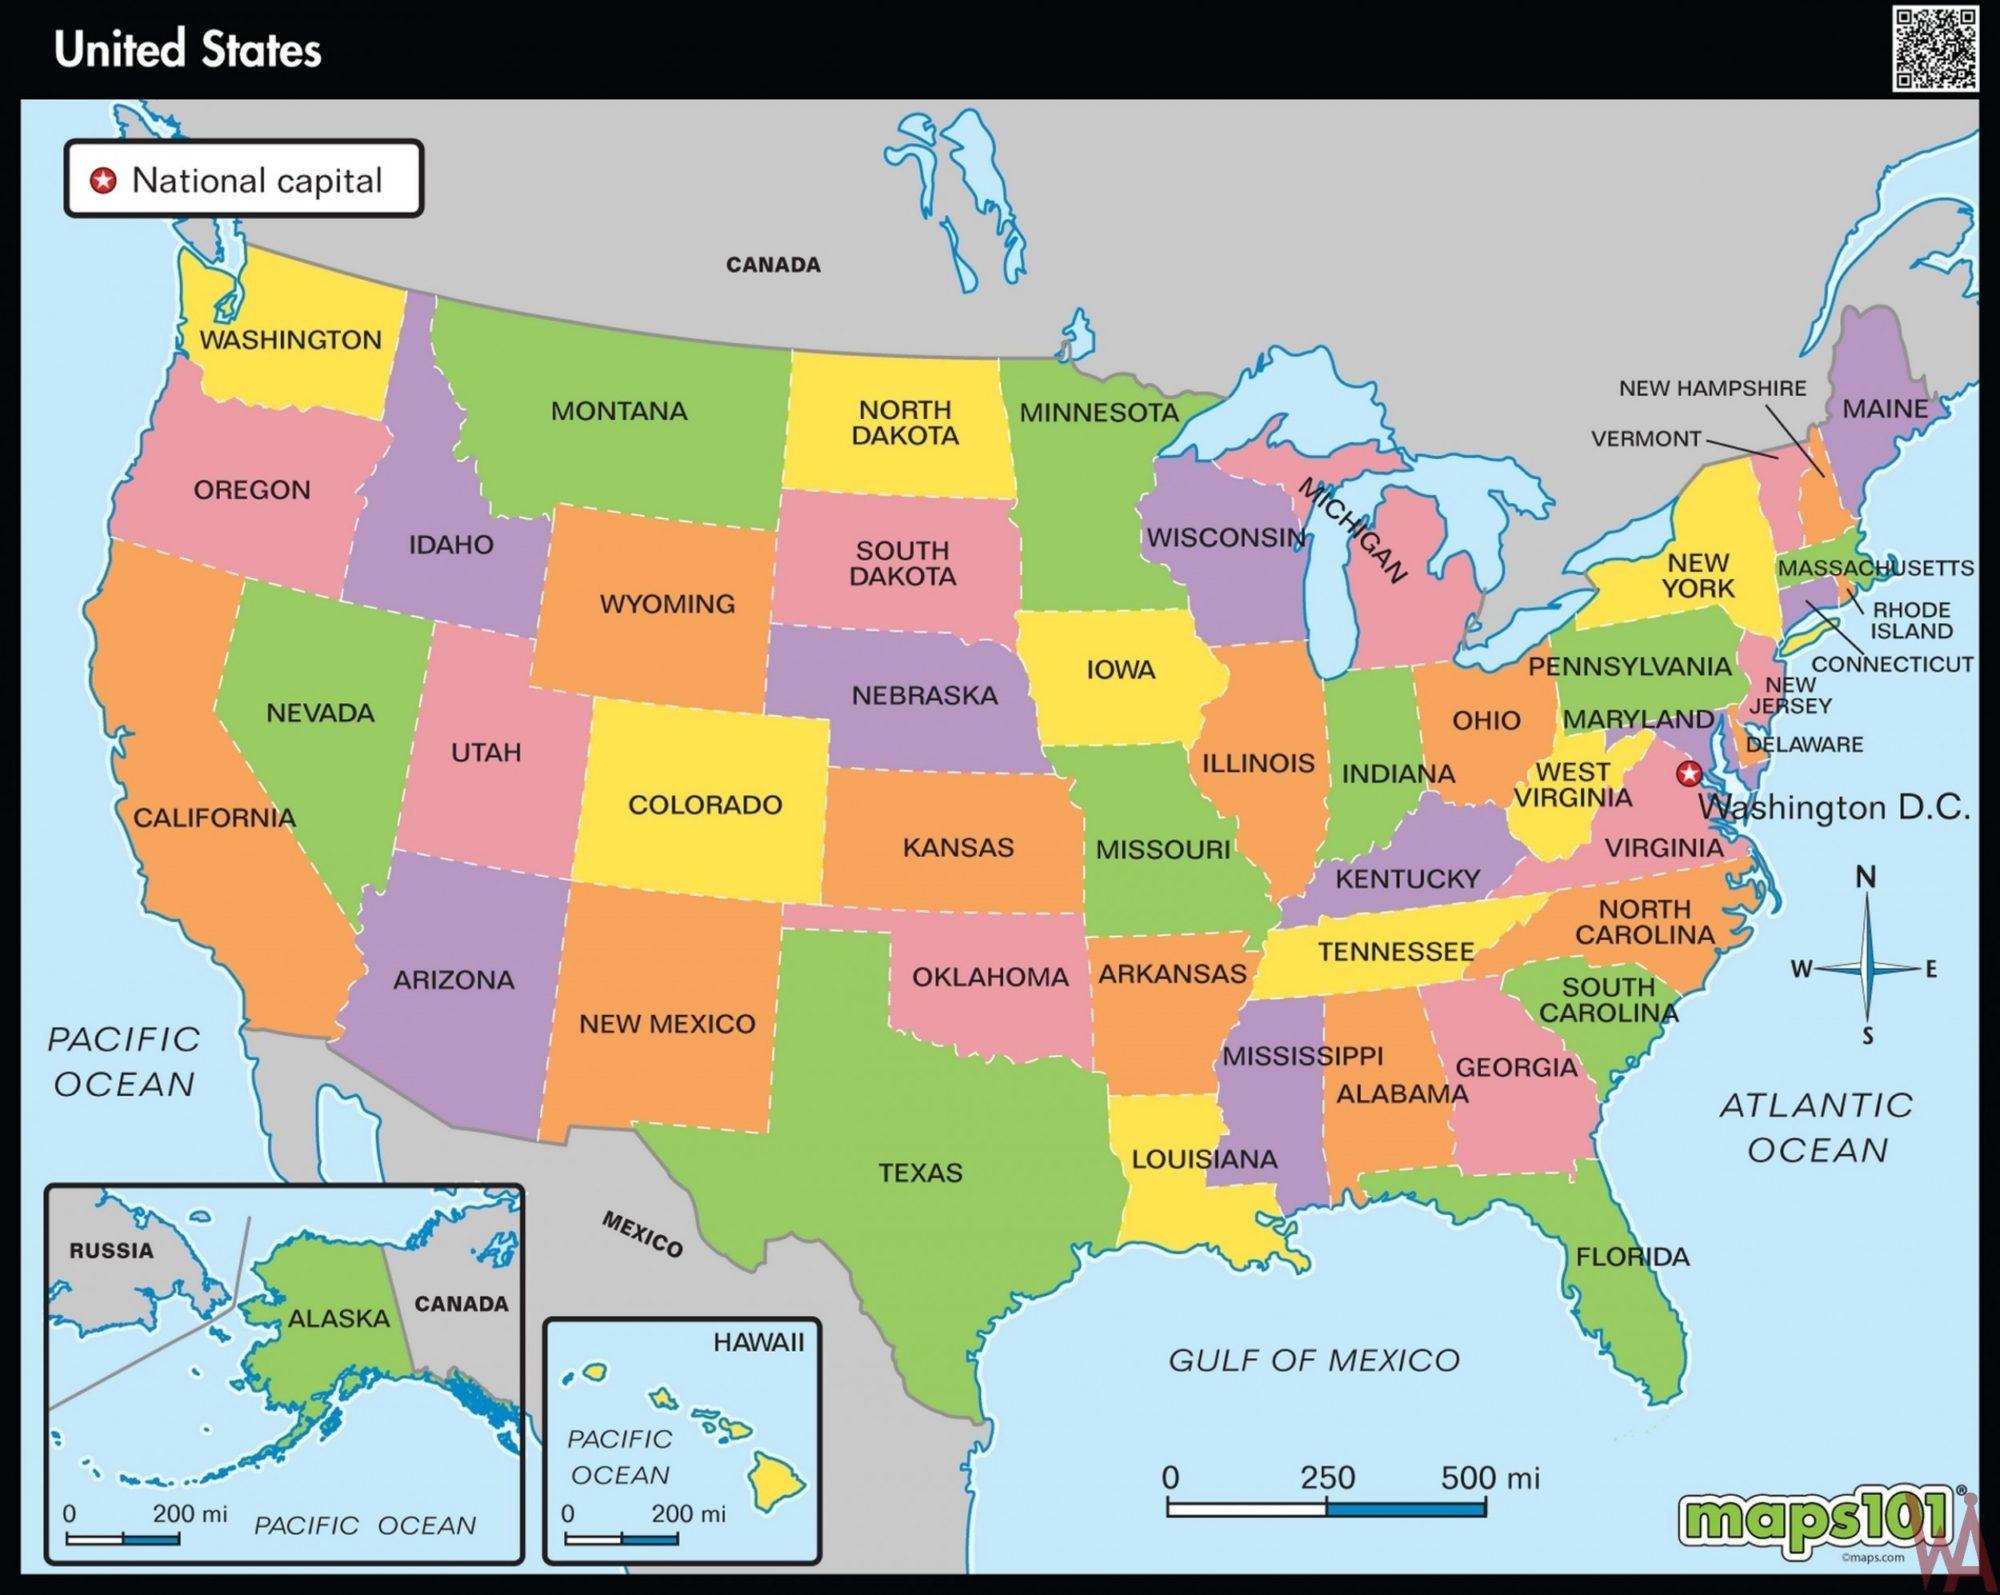 Great Hd Wallpaper Large State Map Of The US WhatsAnswer